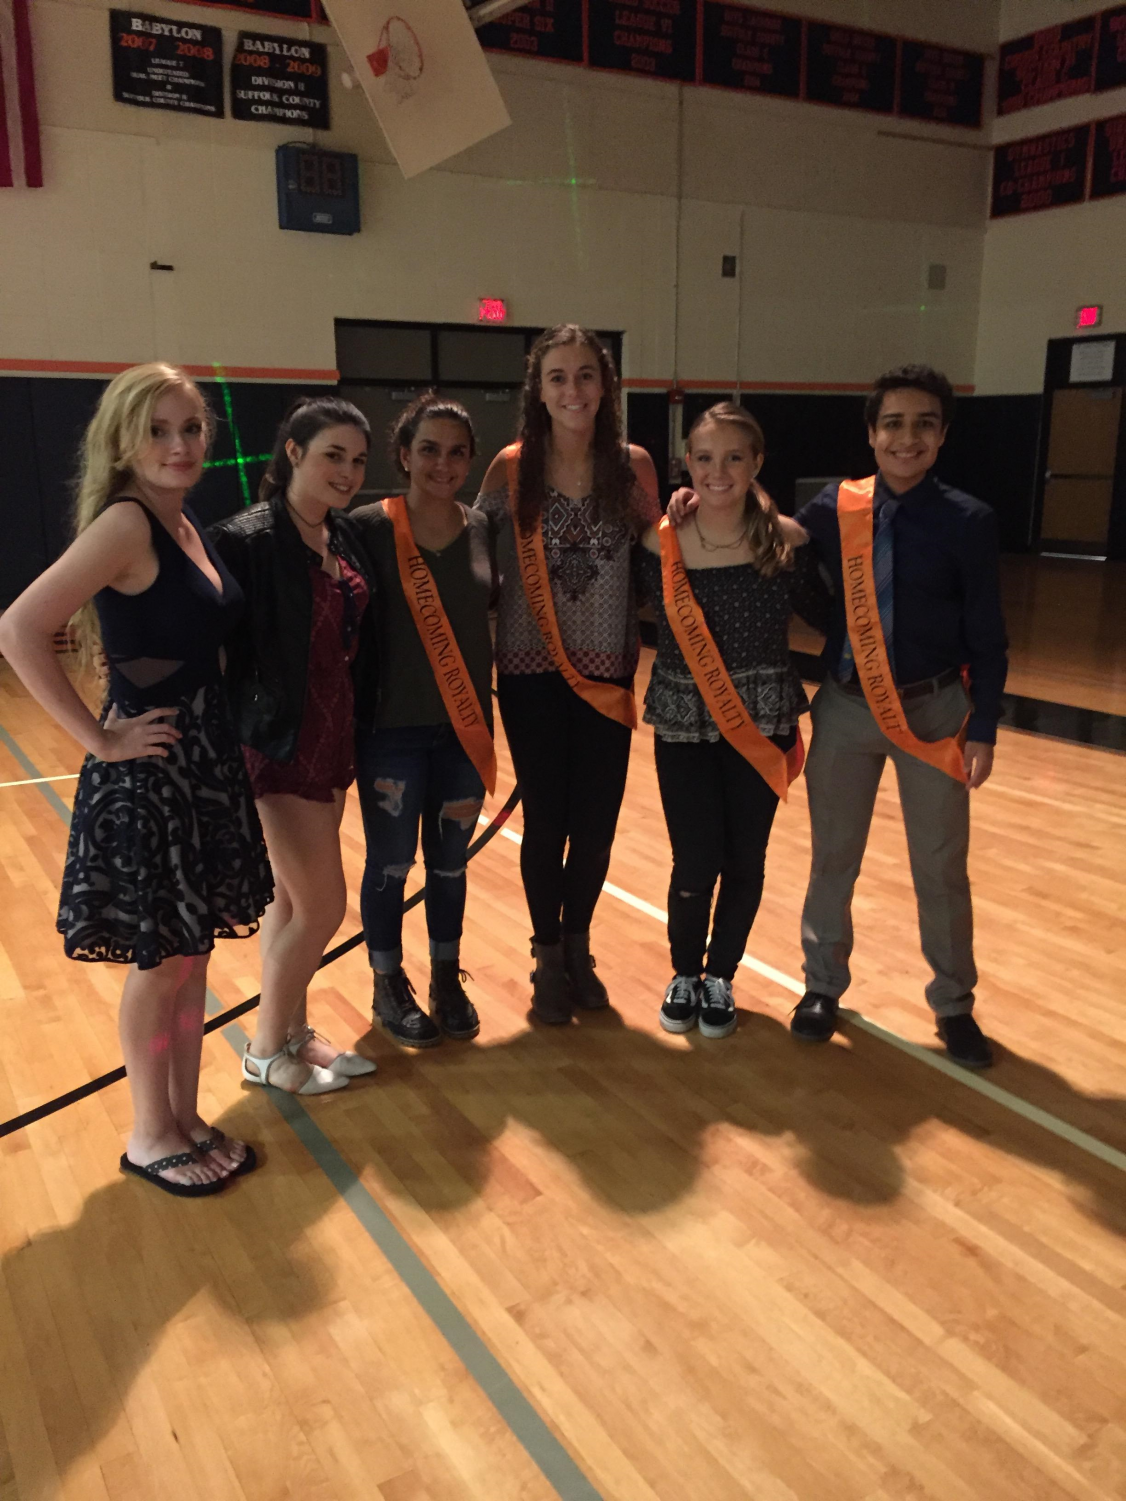 Members of the Homecoming court enjoy the dance.